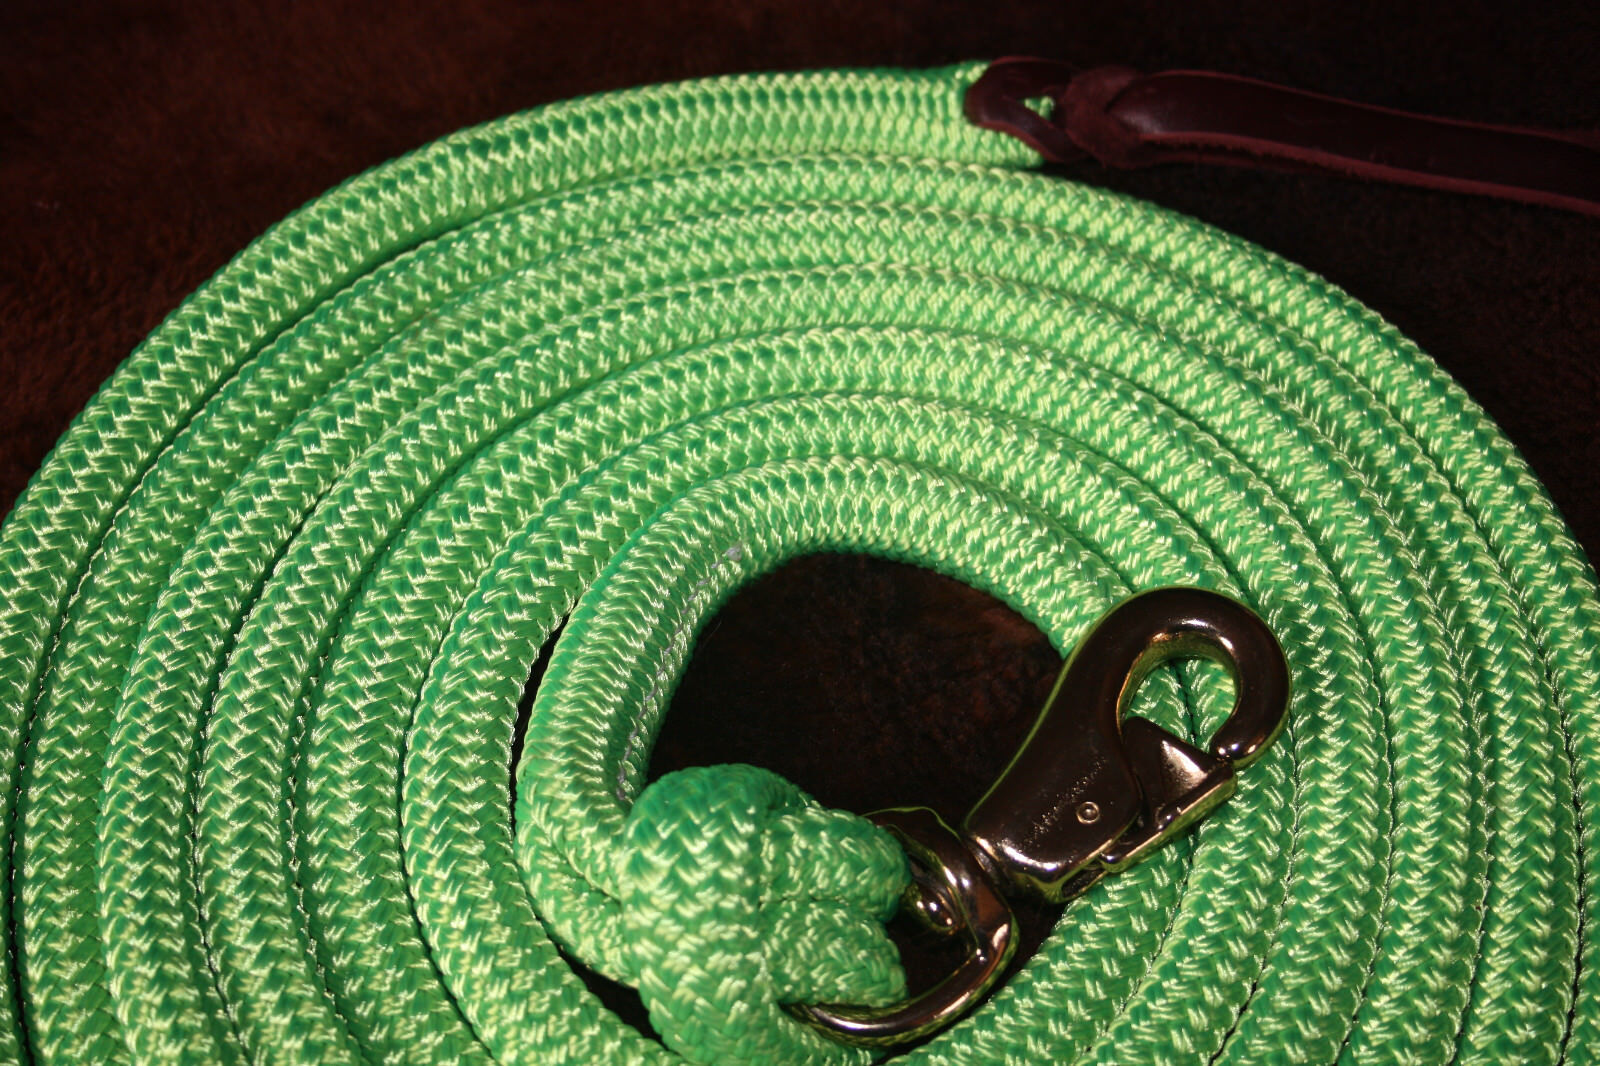 Horse Training 4-knot Thomey lead halter and 14-foot lead Thomey  Neon Grün 9db717